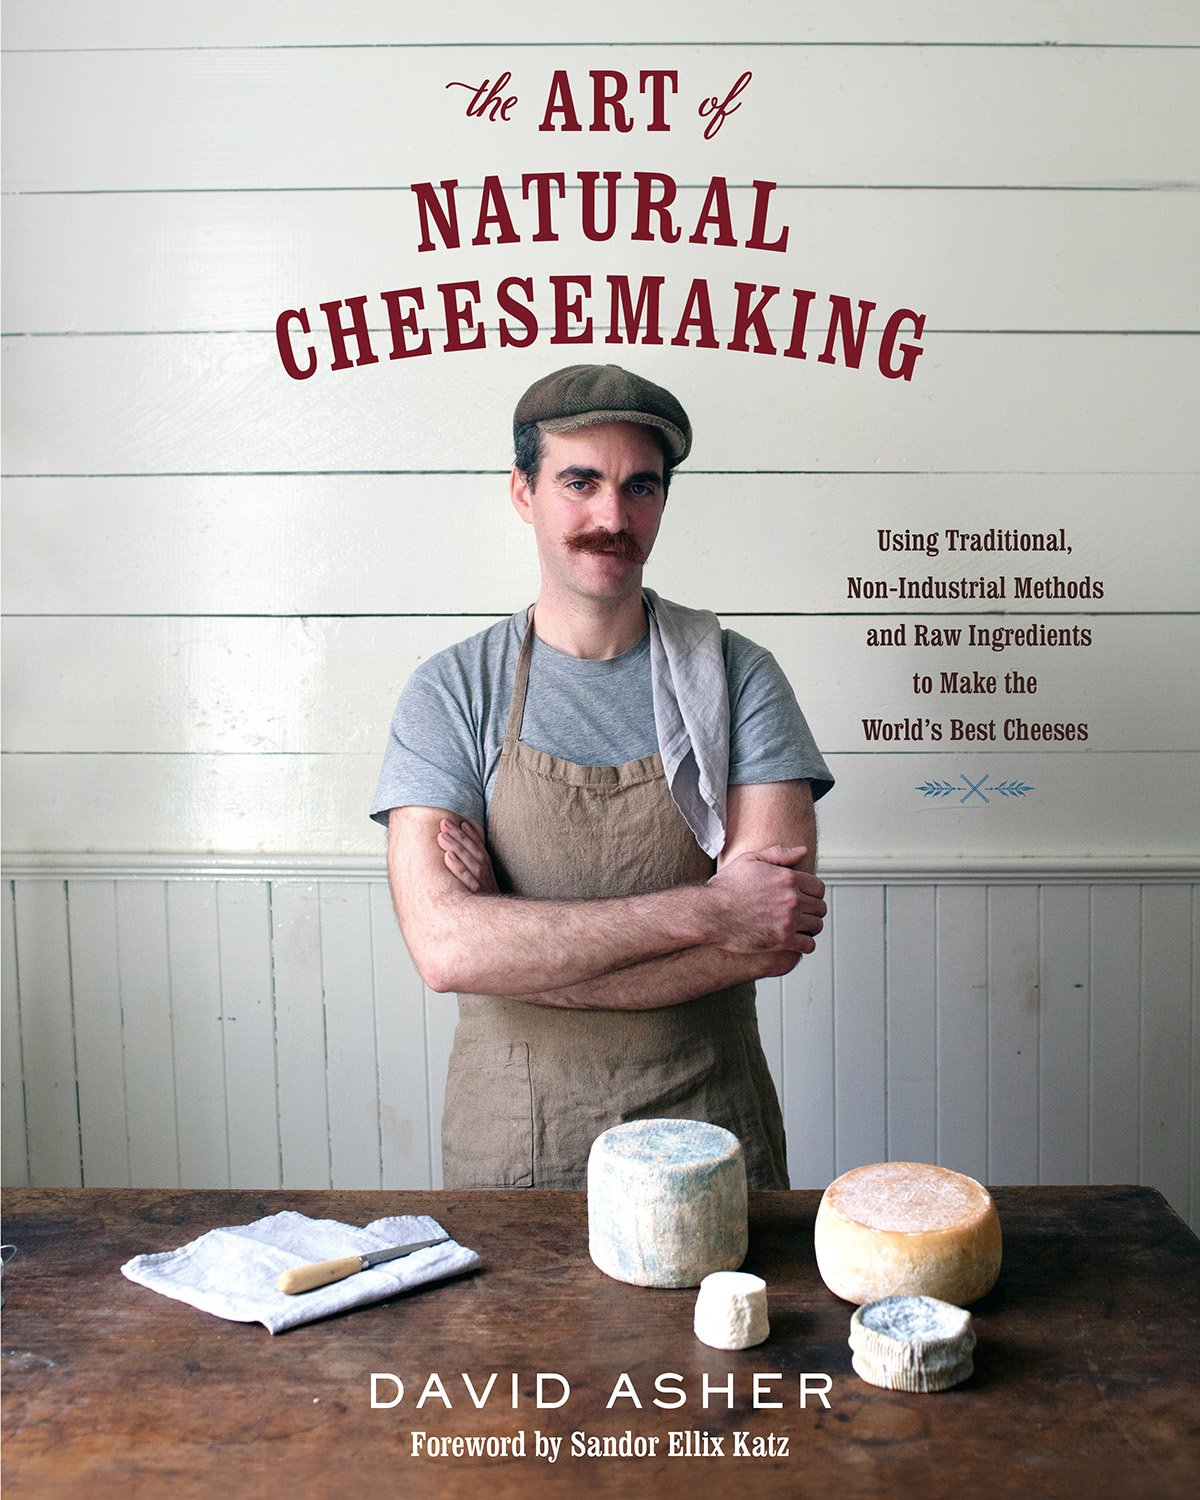 The Art Of Natural Cheesemaking  Using Traditional Methods And Natural Ingredients To Make The World's Best Cheeses